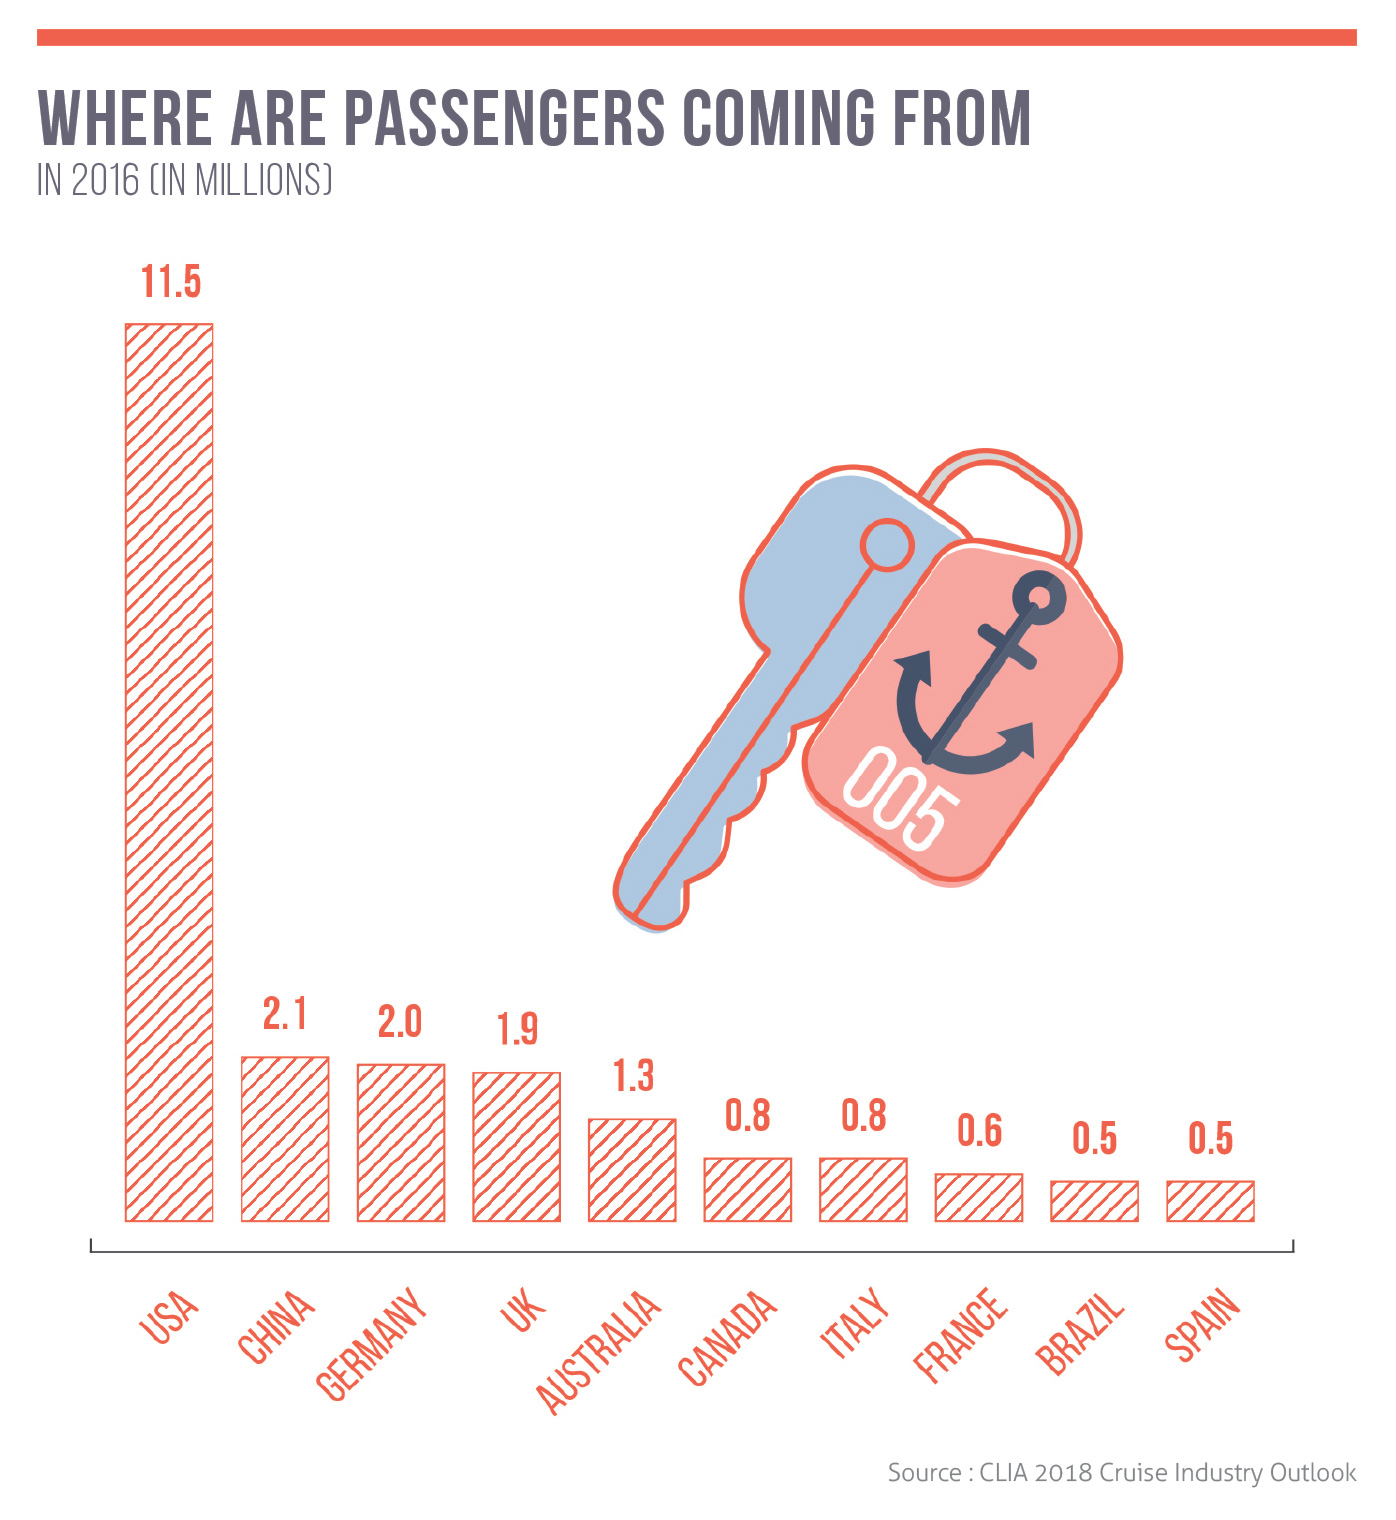 Where are passengers coming from? (In 2016, in millions)